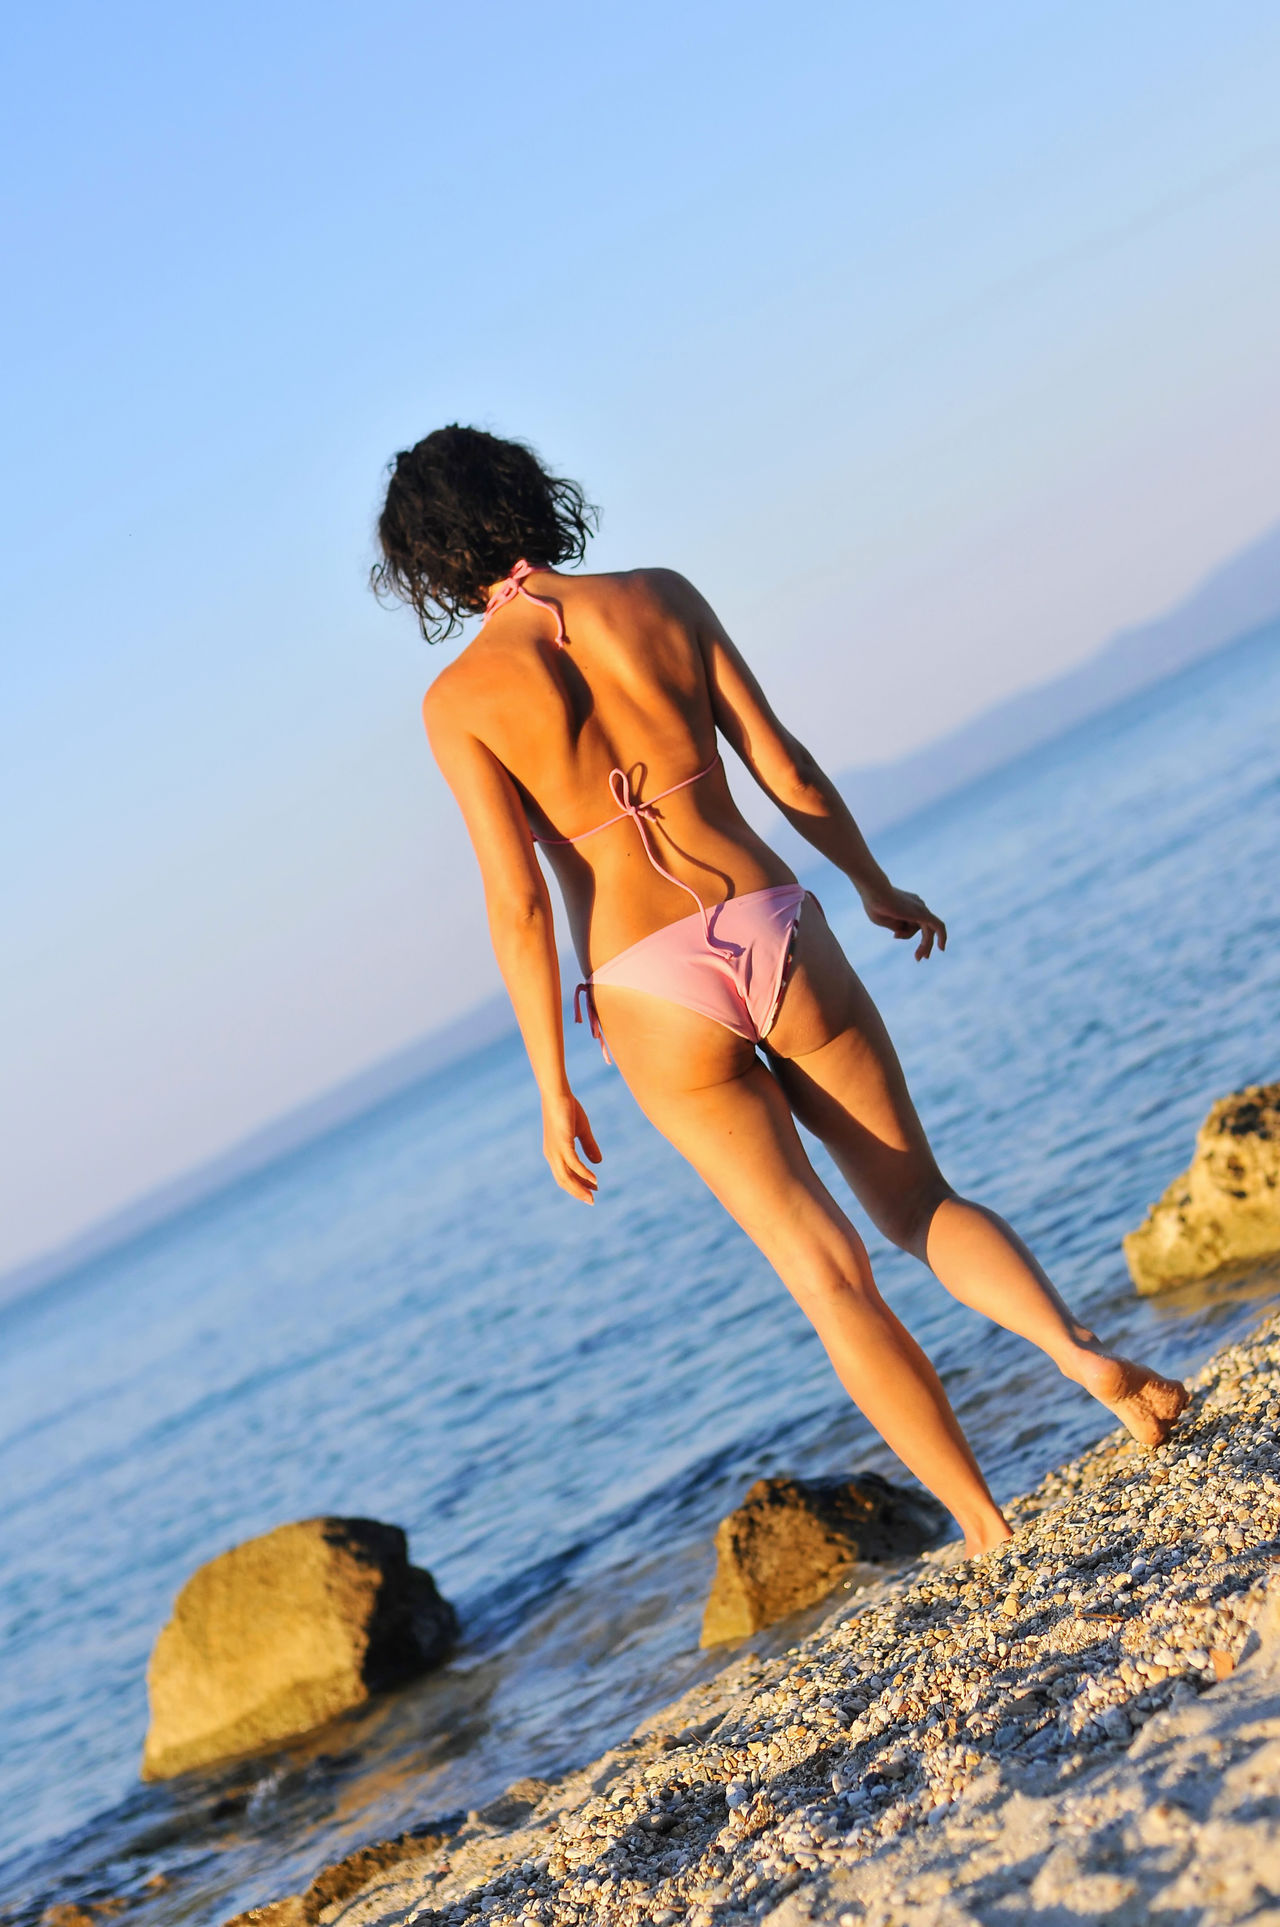 A good looking woman steeping up to the sea. Back View Of Girl Beautiful Woman Beauty In Nature Clear Sky Female Silhouette Good Looking Leisure Activity Lifestyles Nice Body Perfect Body Rock - Object Scenics Standing Stepping Up Sun Bath Sun Bathing Vacations Woman Back Woman Backside Young Adult Young Women